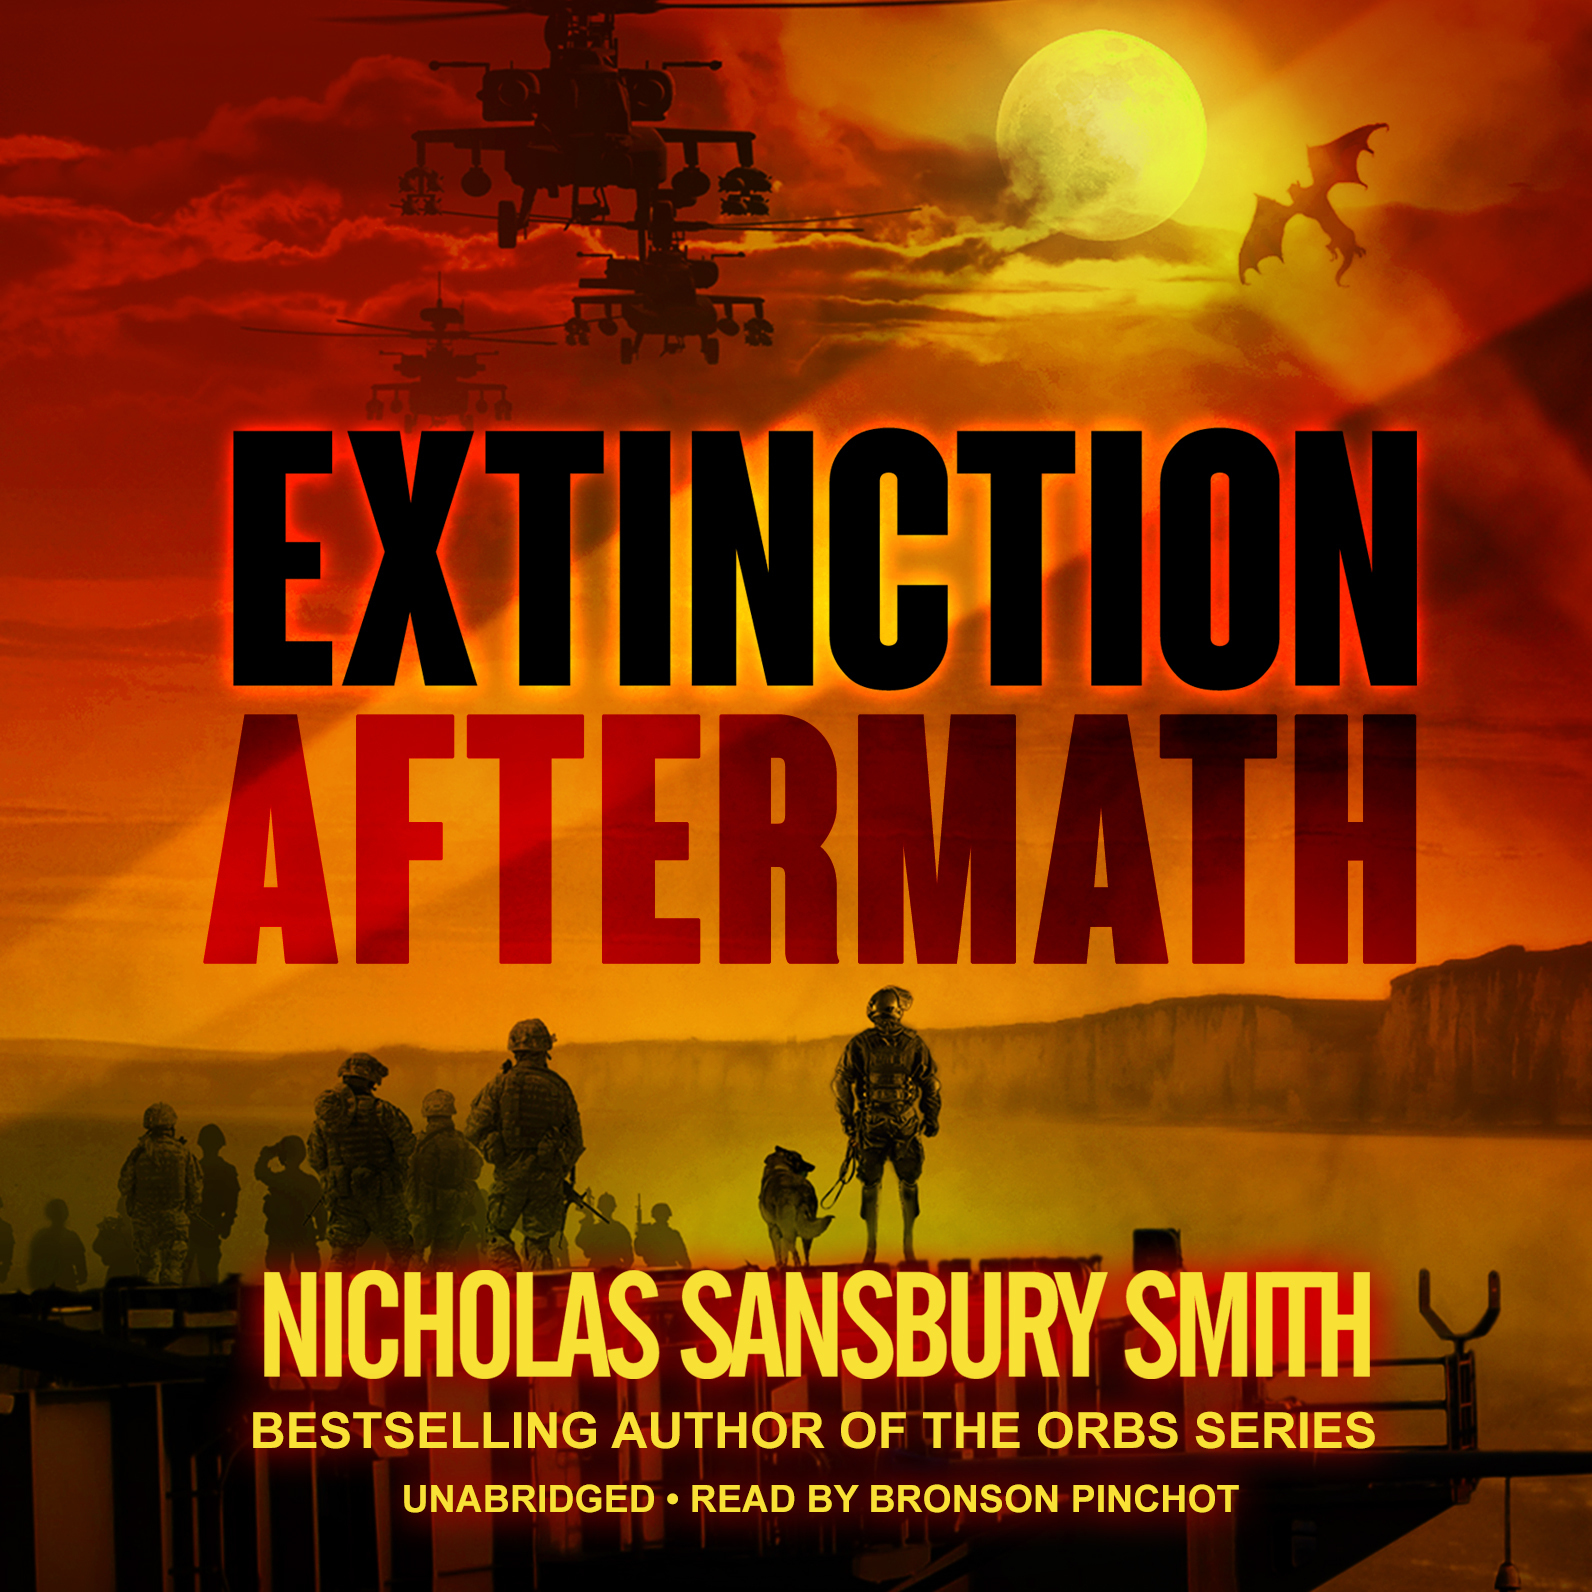 Printable Extinction Aftermath Audiobook Cover Art